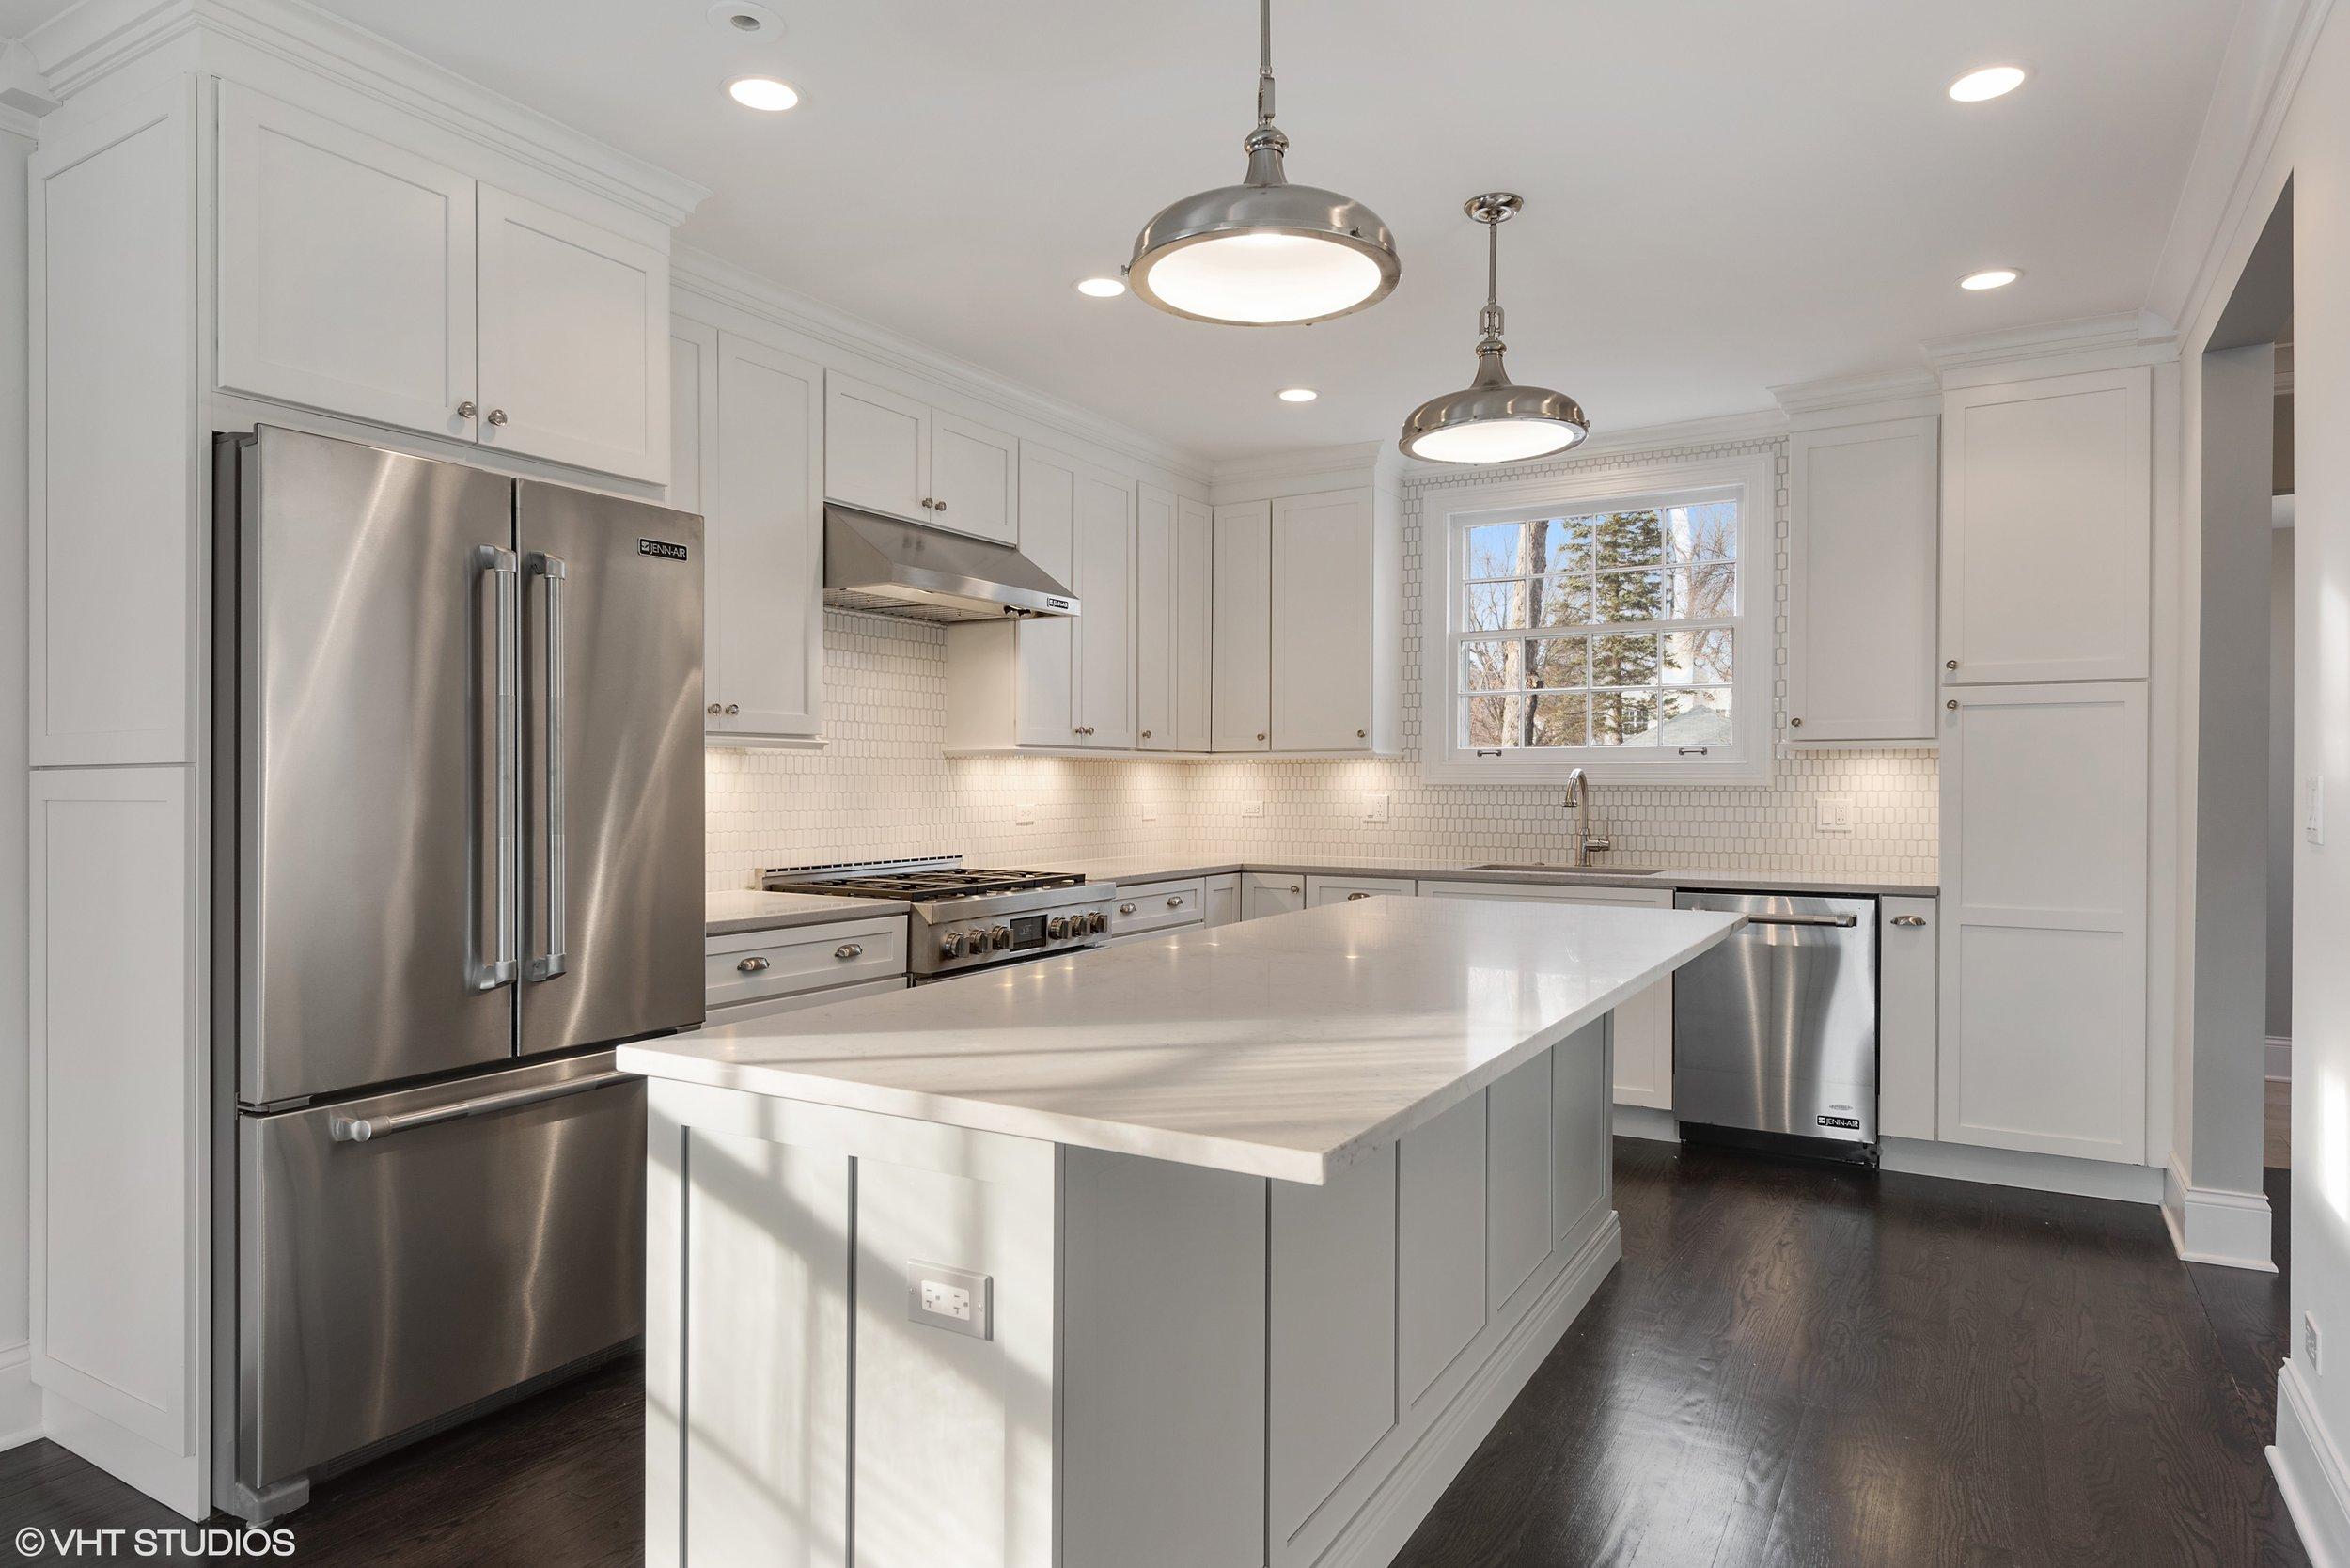 The kitchen was a prime example of adapting the layout to today's family: small, dark and closed off by a wall where the refrigerator is now, the new kitchen benefitted from a more spacious expansion, as well as new appliances, cabinetry, and lighting.